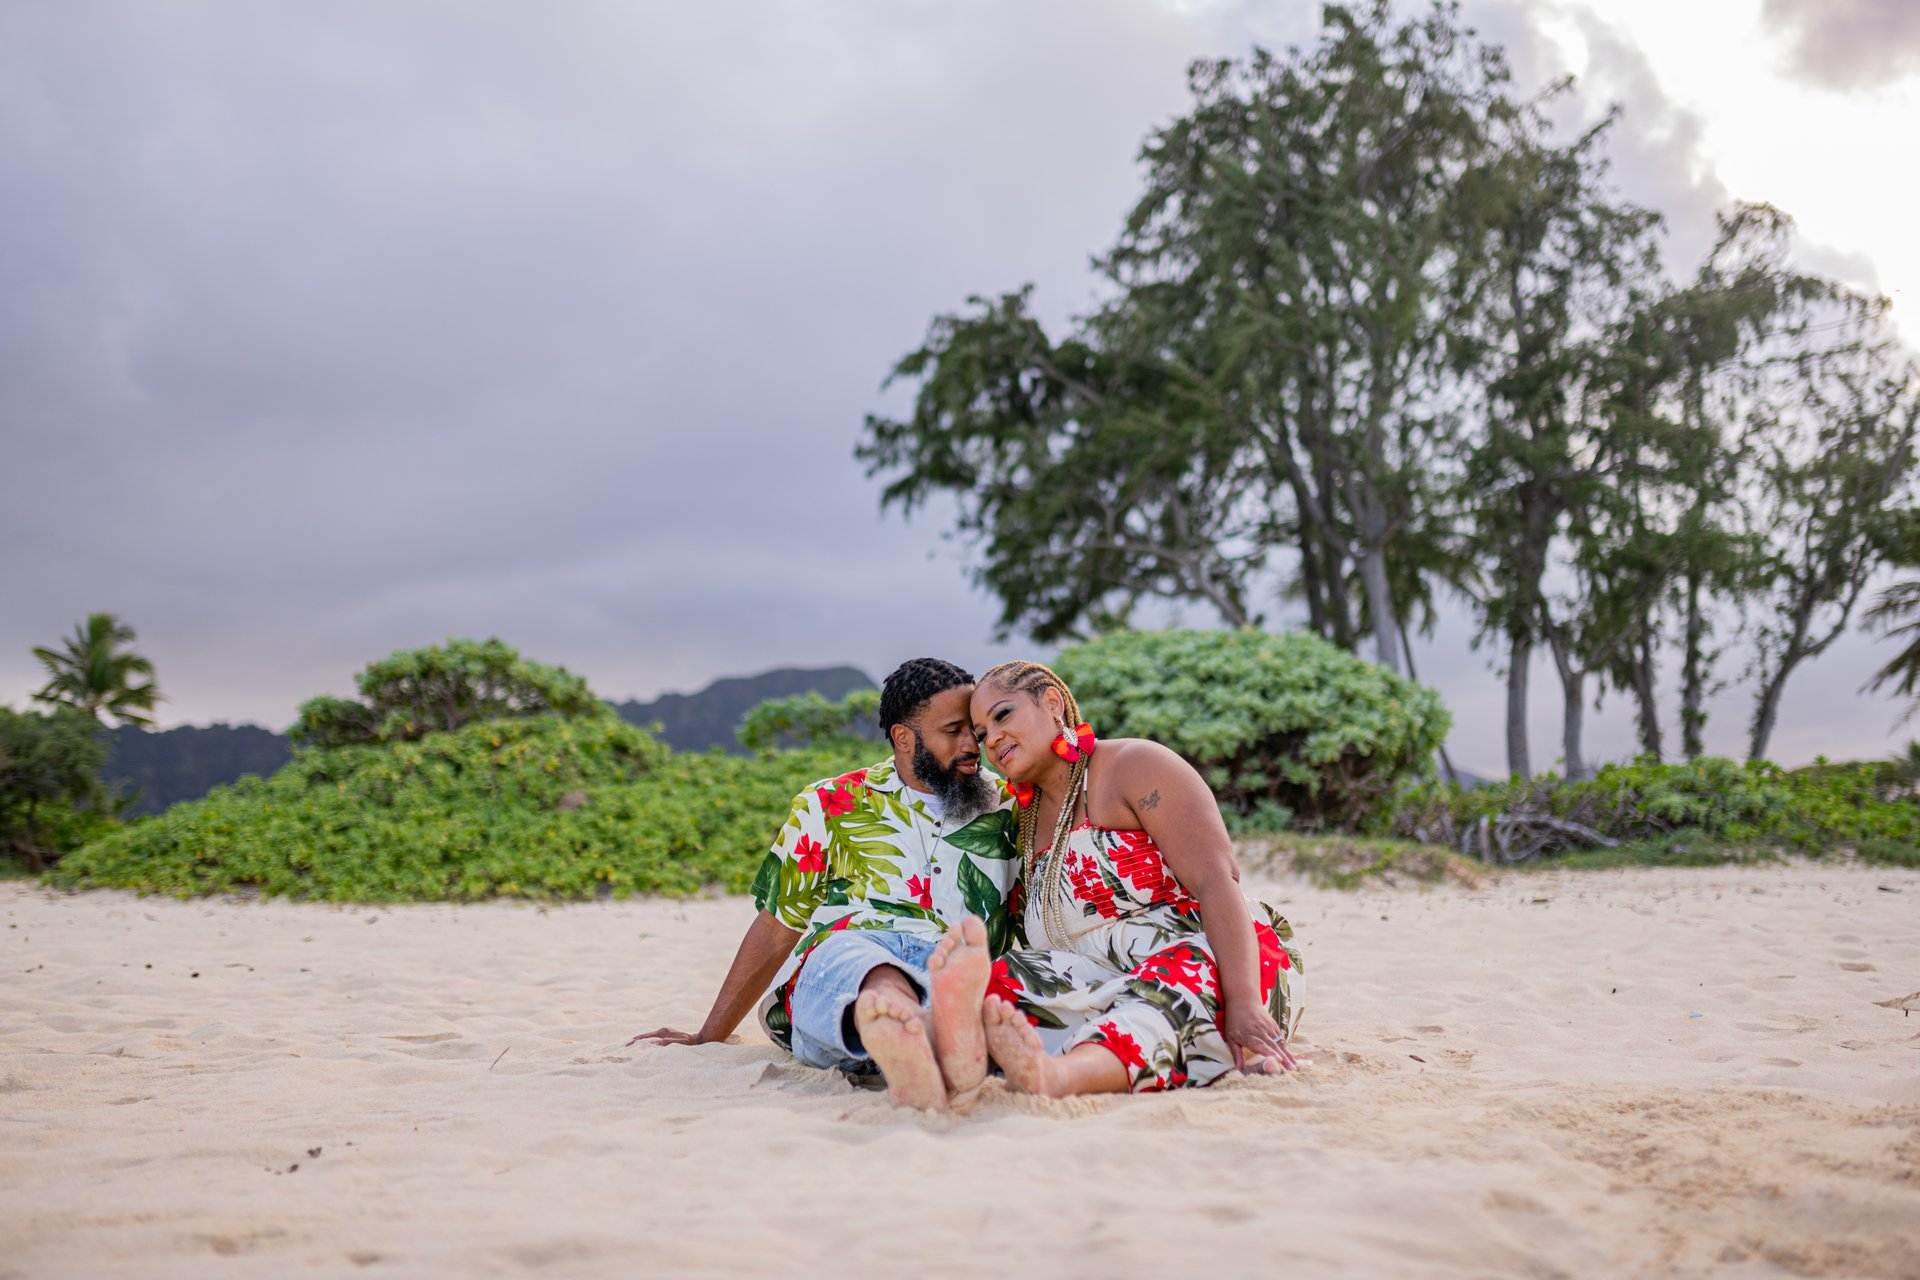 Flytographer Travel Story - Our Amazing Anniversary Trip Back To Hawaii!